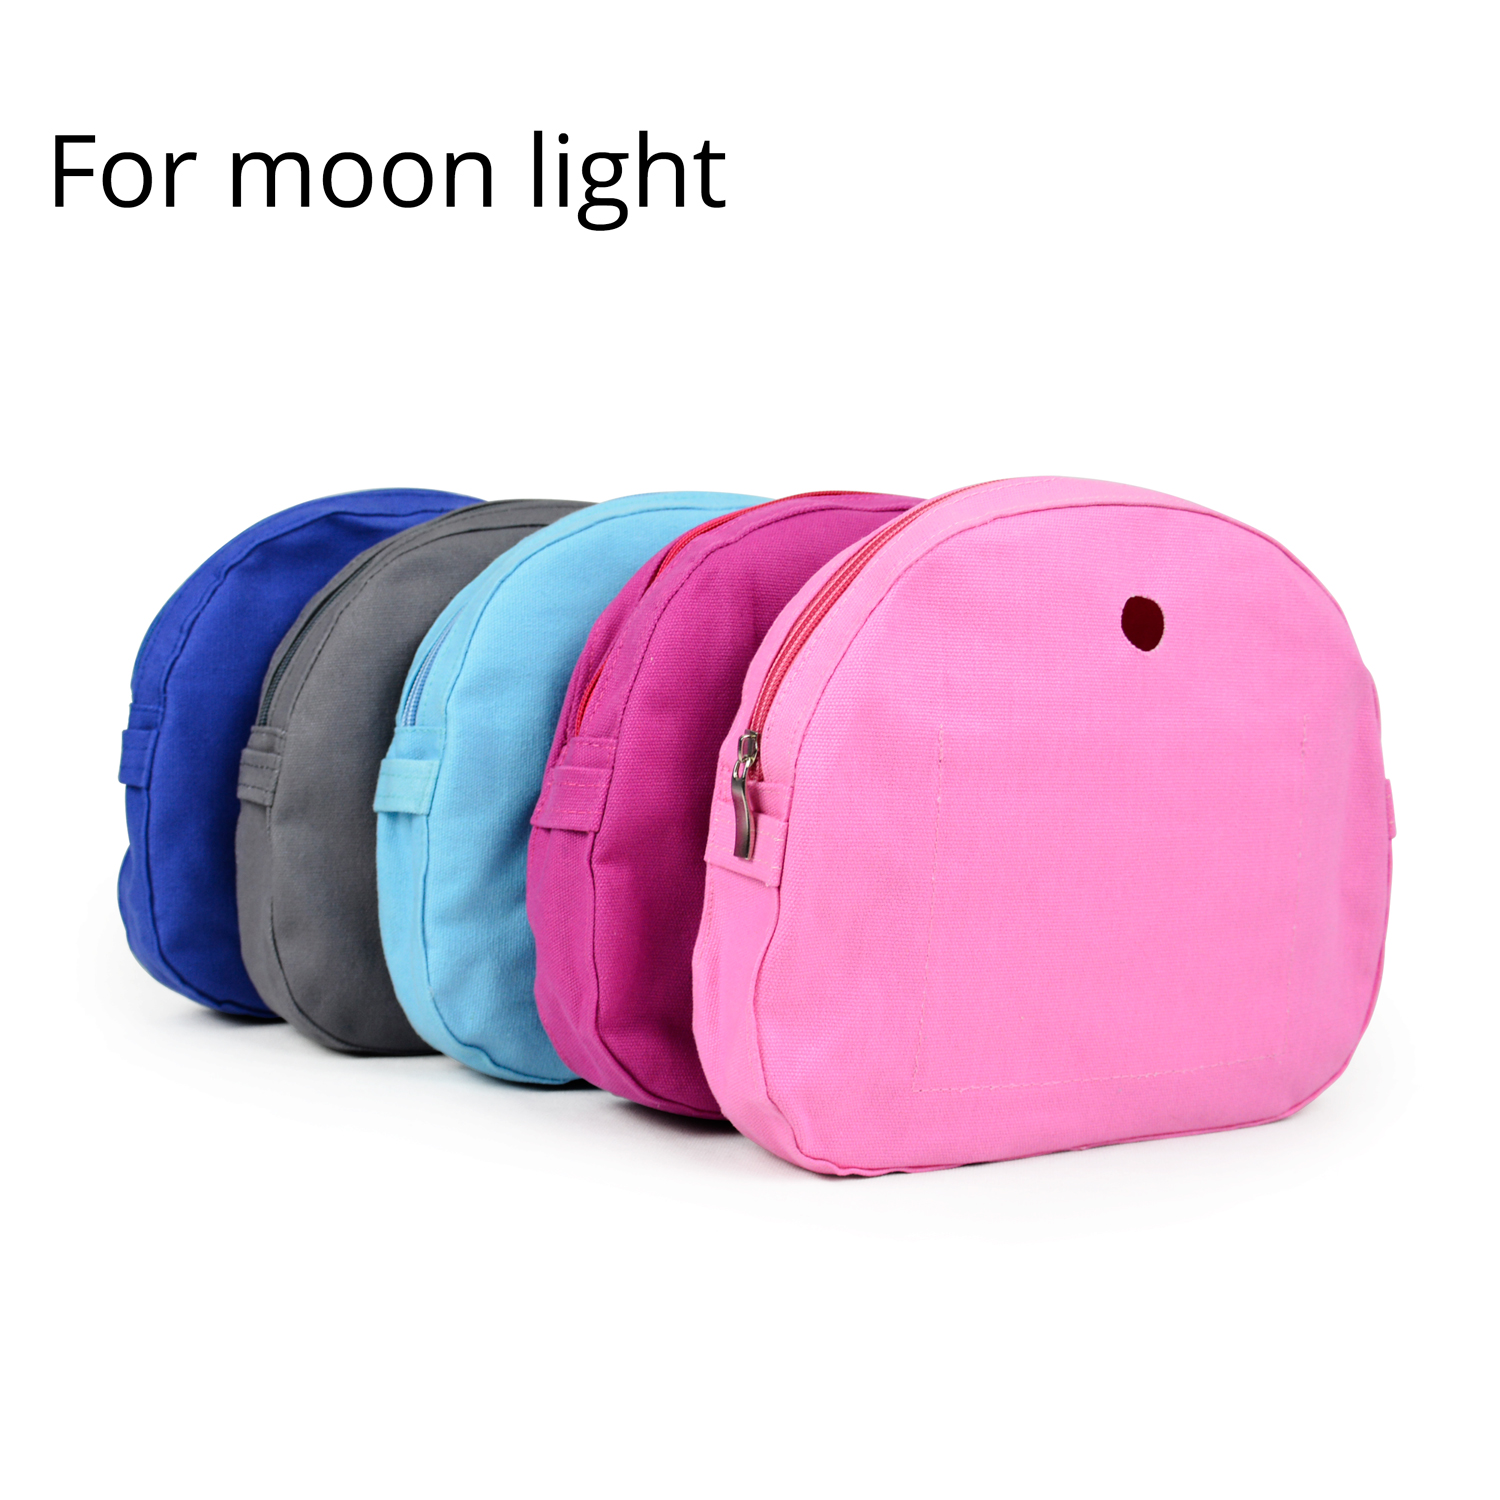 New Pure Color Canvas Fabric Inner Pocket Lining For Omoon Light Obag Insert Organizer For O Moon Baby O Bag